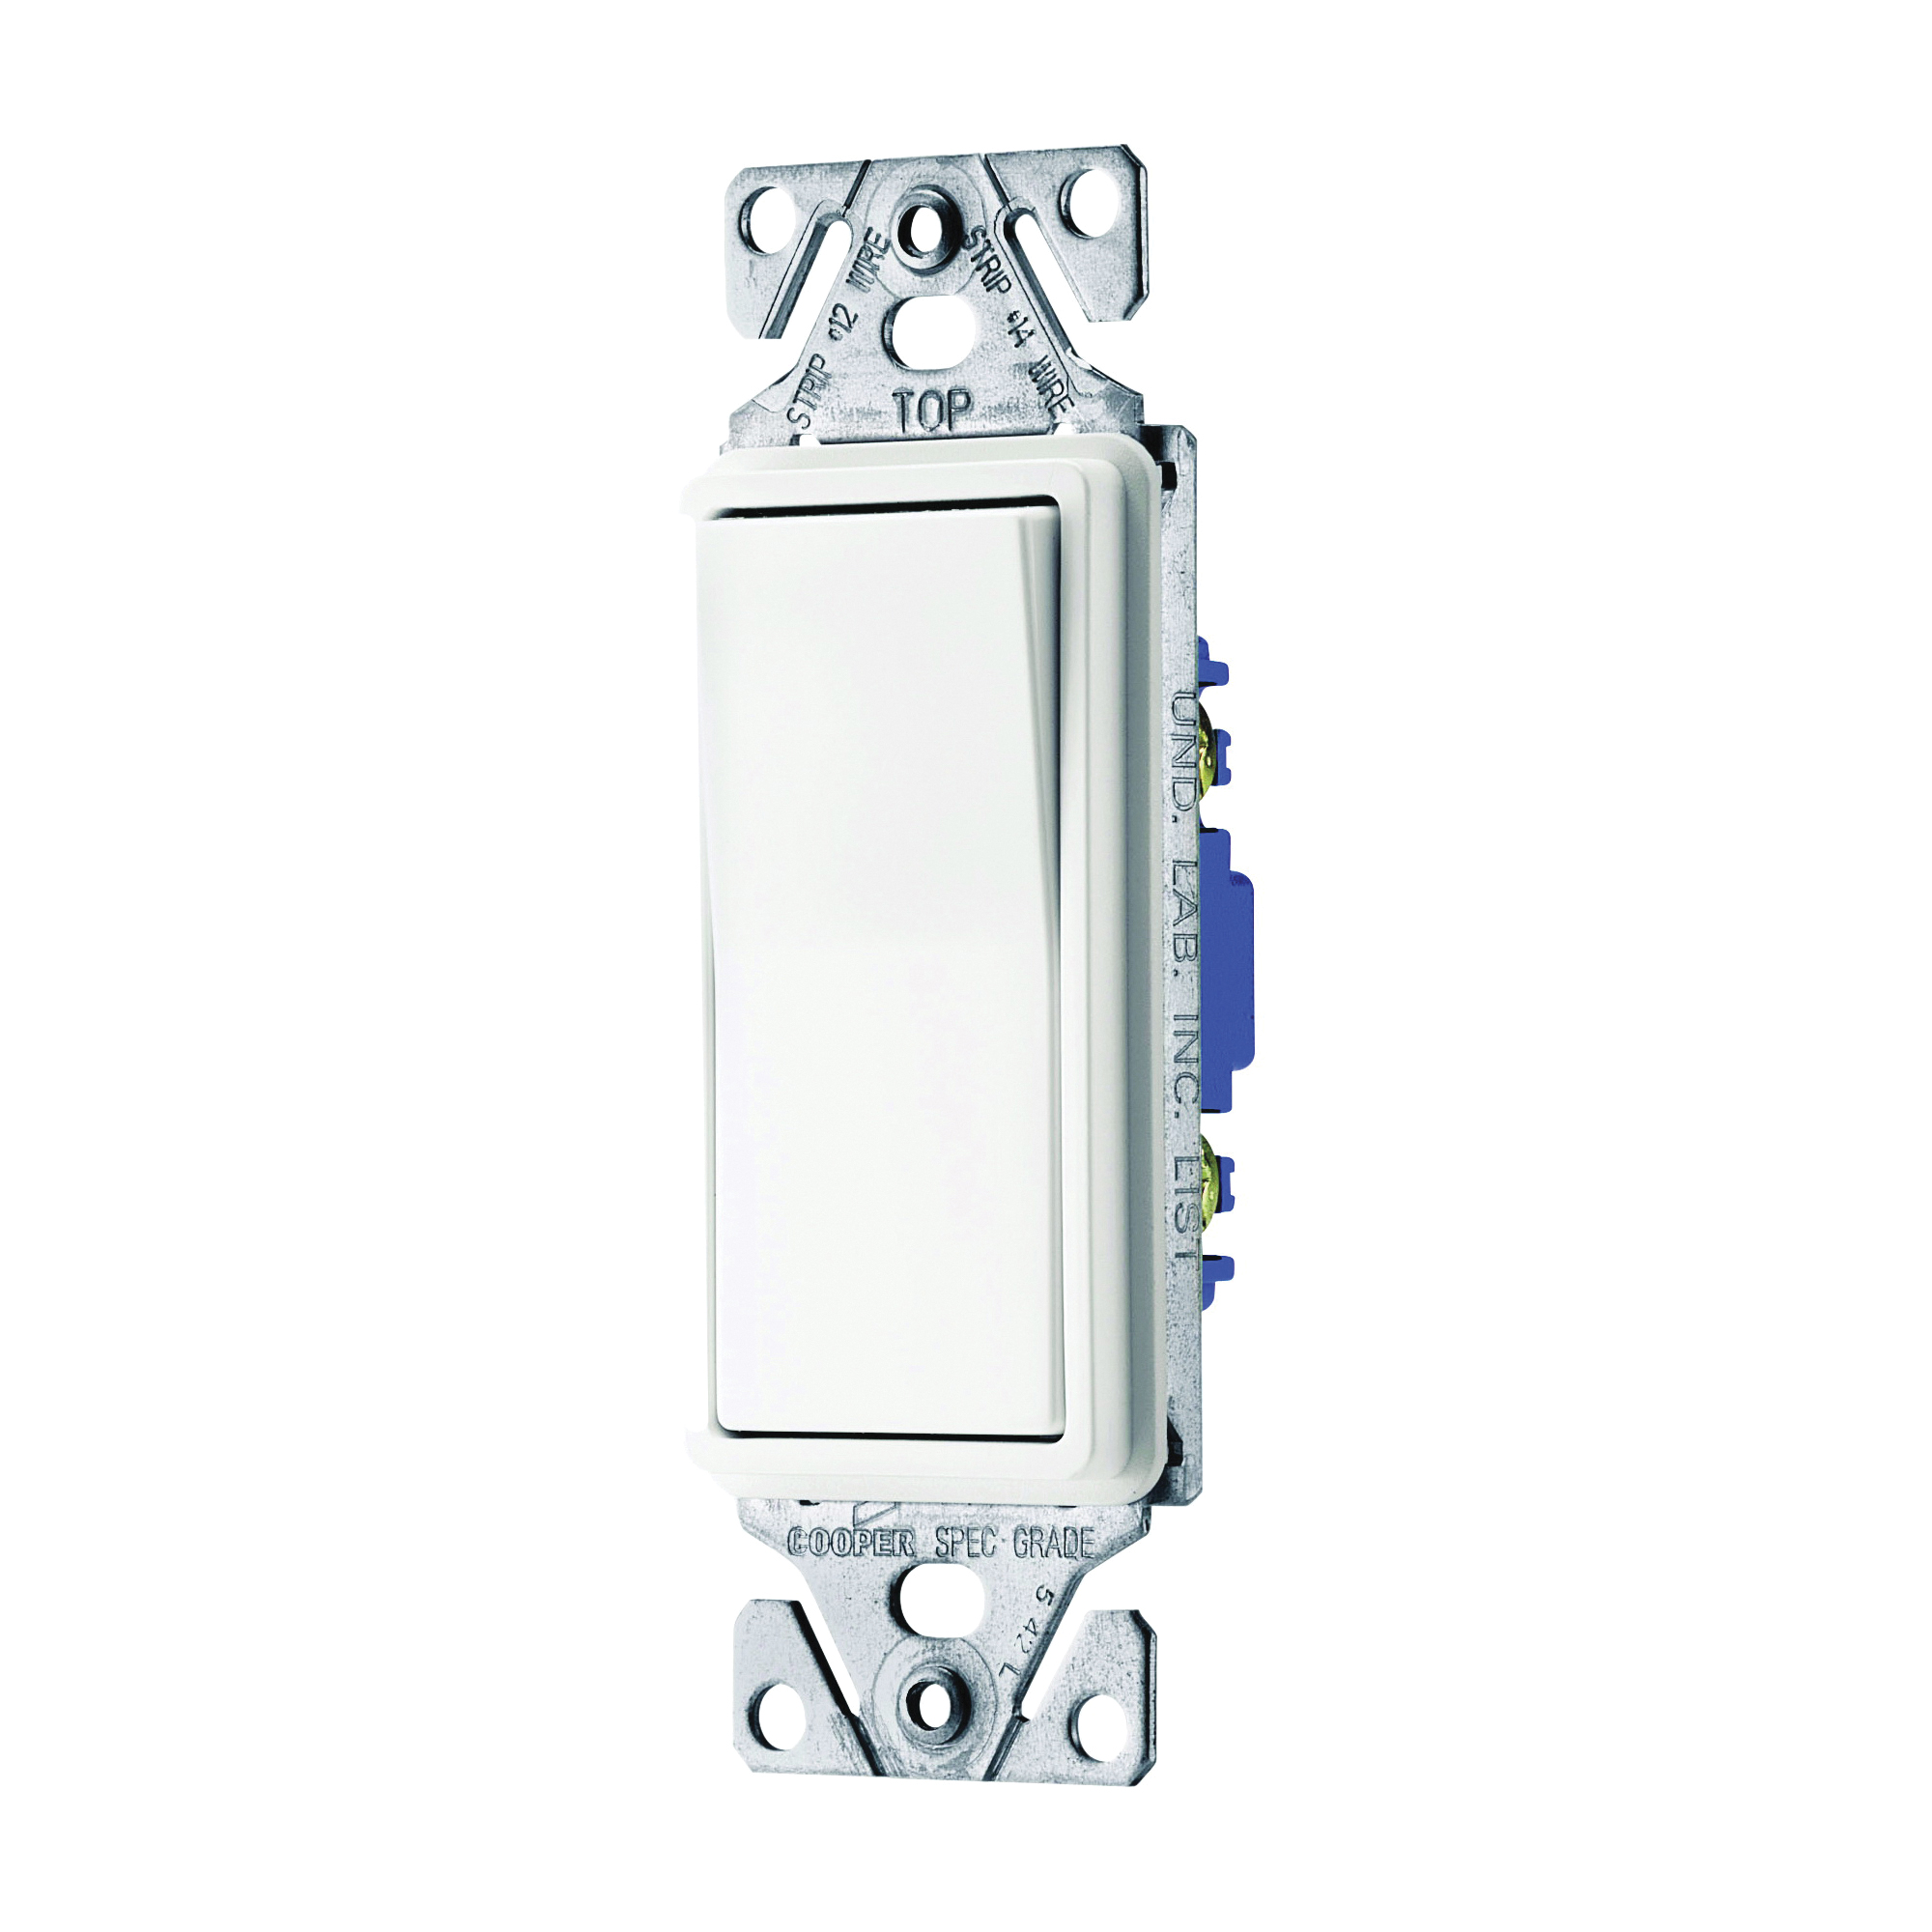 Picture of Eaton Wiring Devices 7500 Series C7511W-SP-L Rocker Switch, 15 A, 120/277 V, Single-Pole, Lead Wire Terminal, White